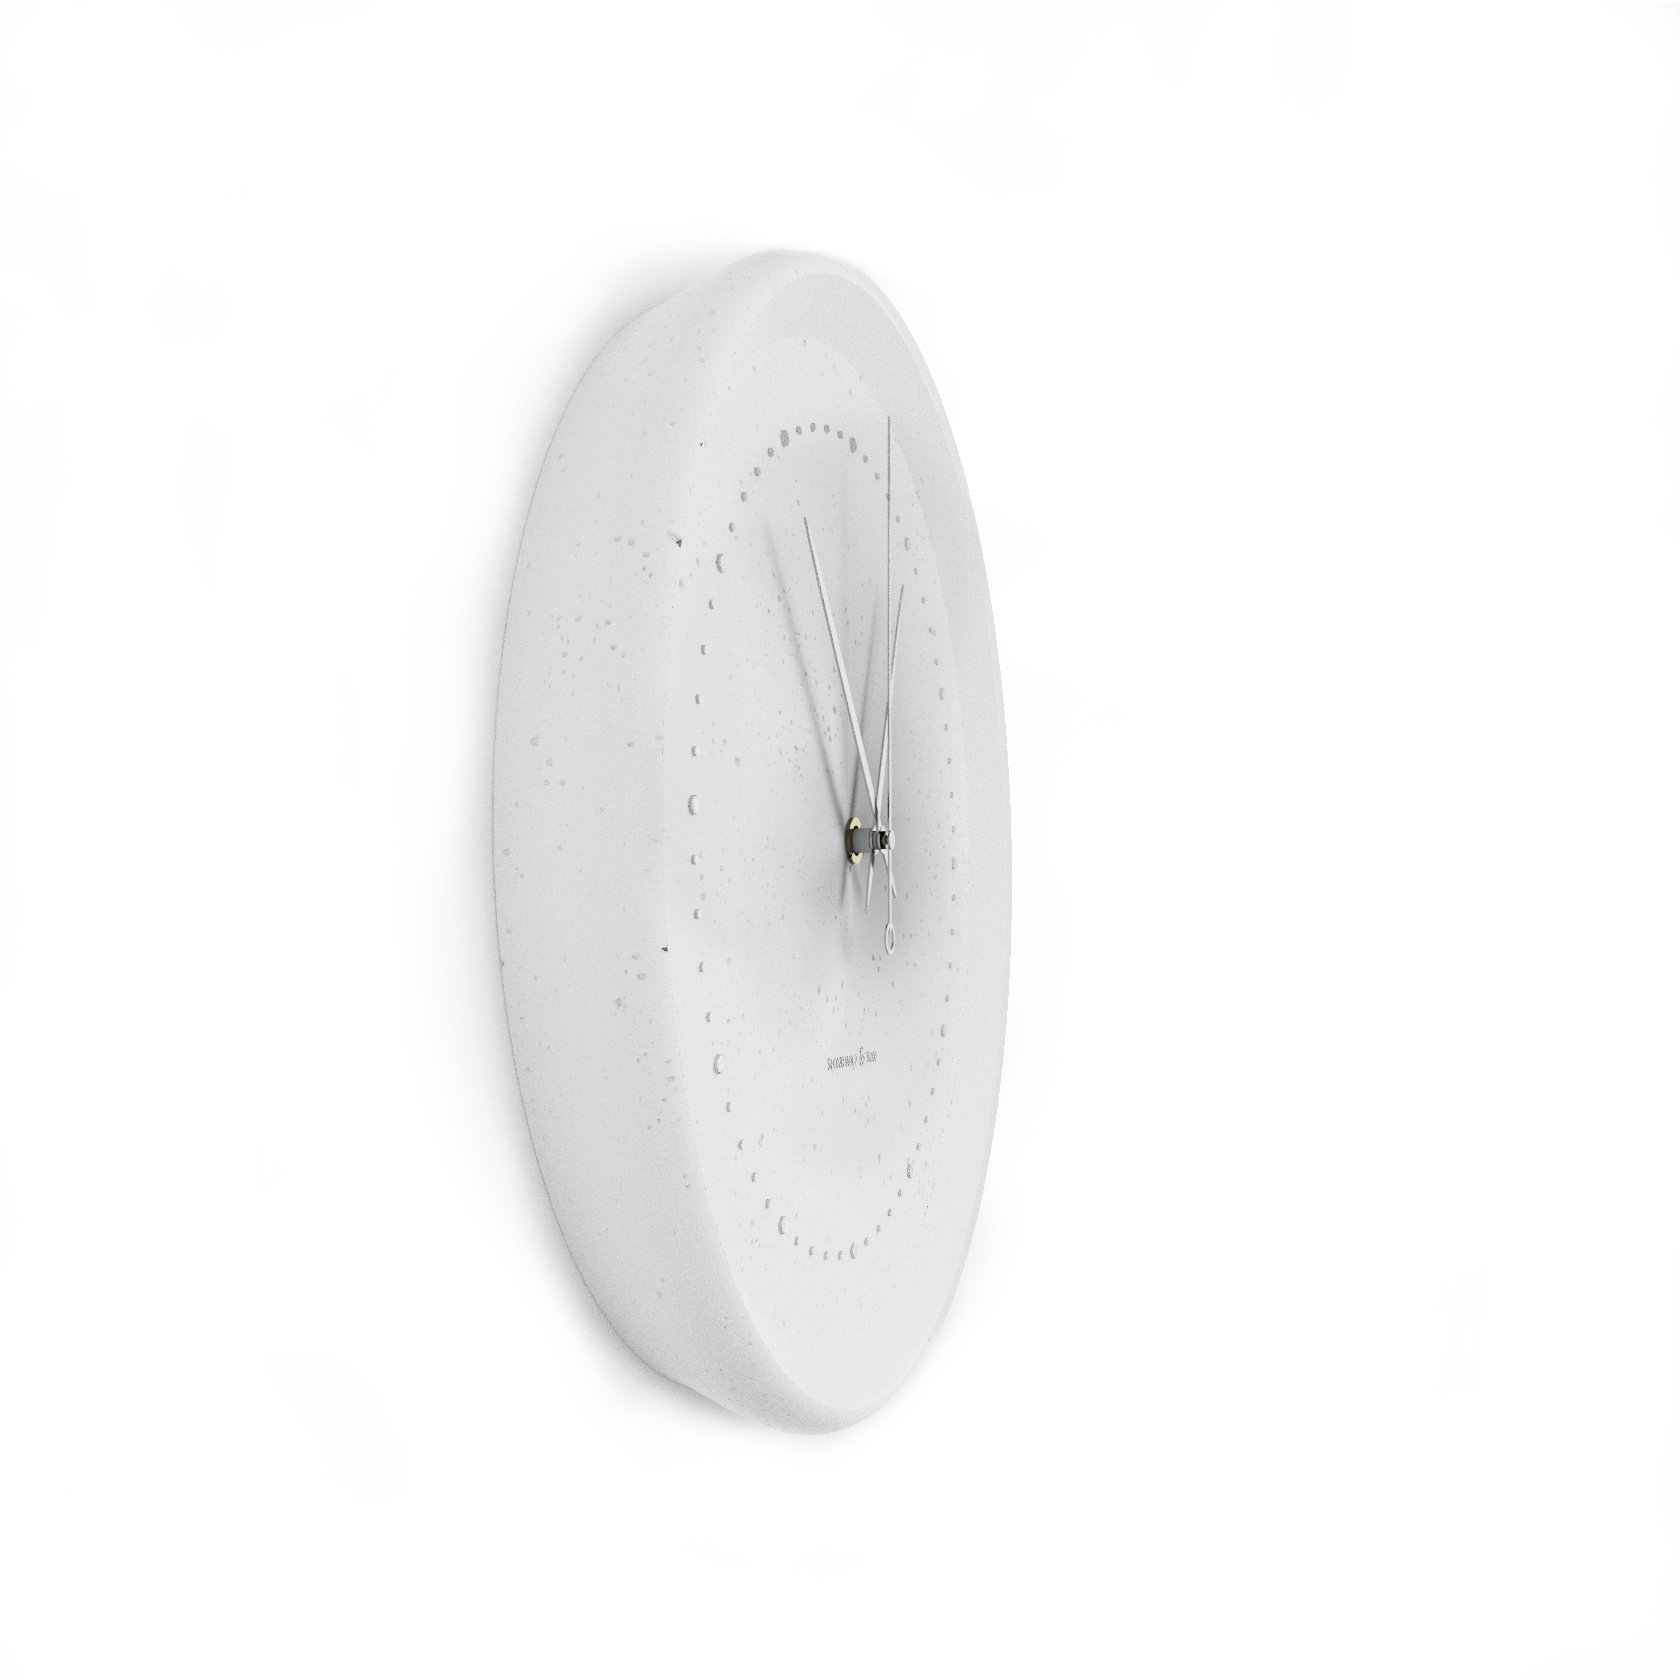 Concrete white wall clock - view from the side